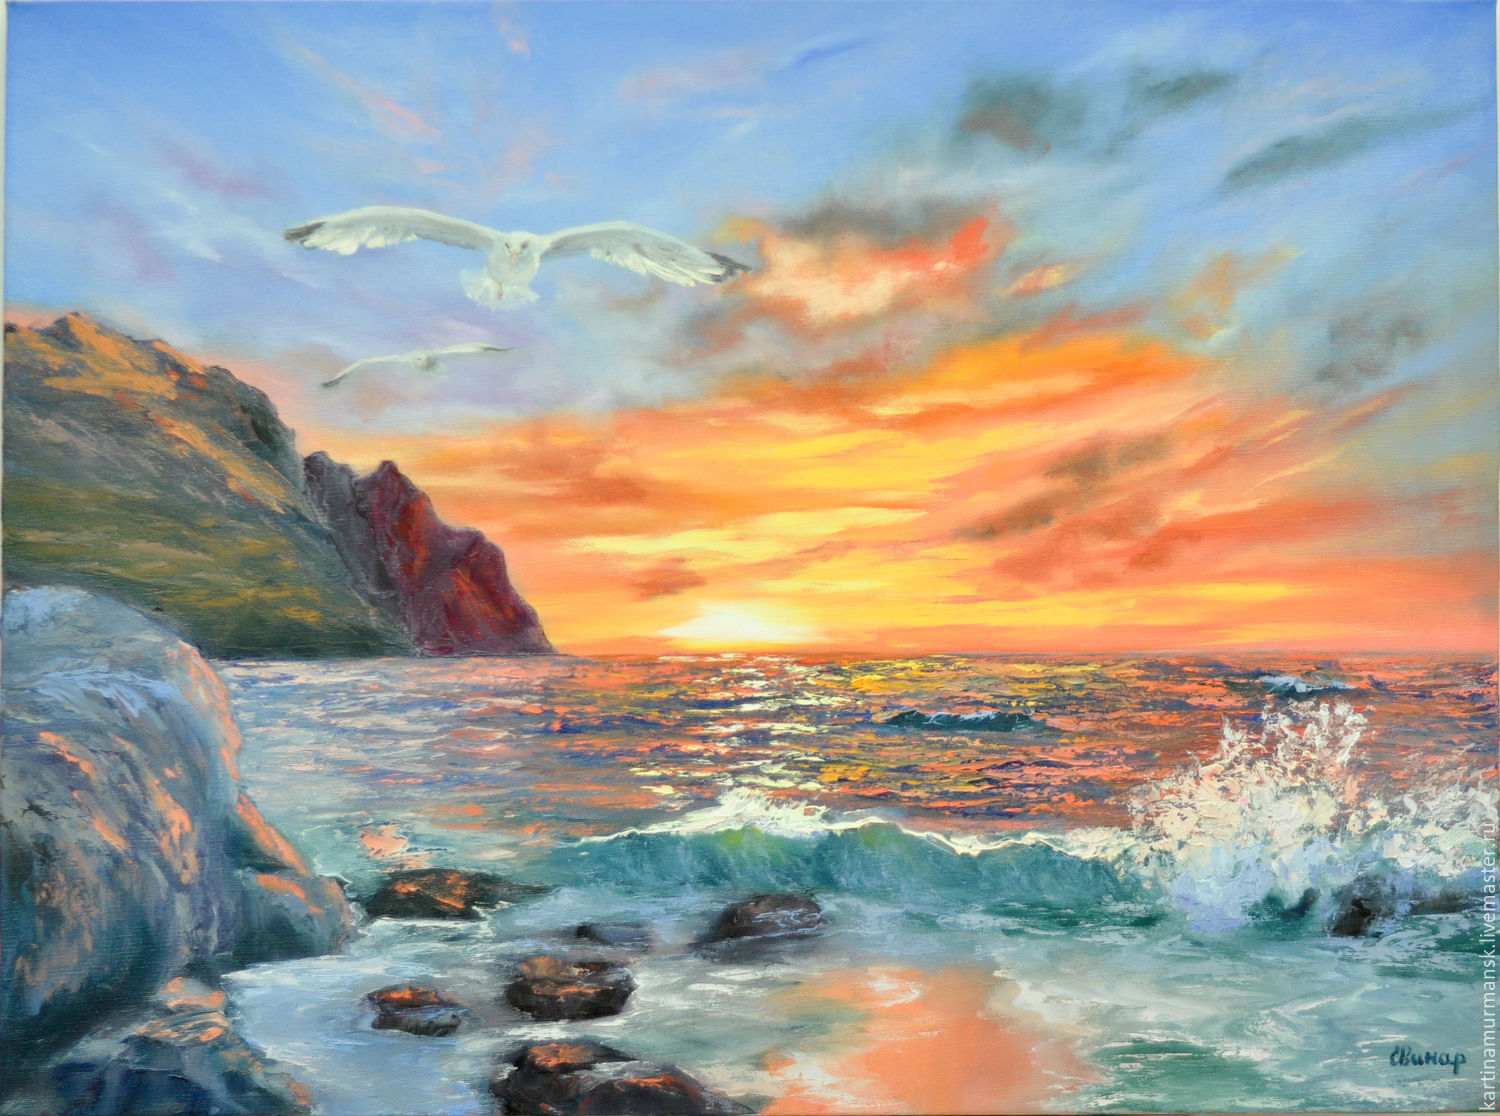 Sunset over the sea - seascape, oil paintings on canvas